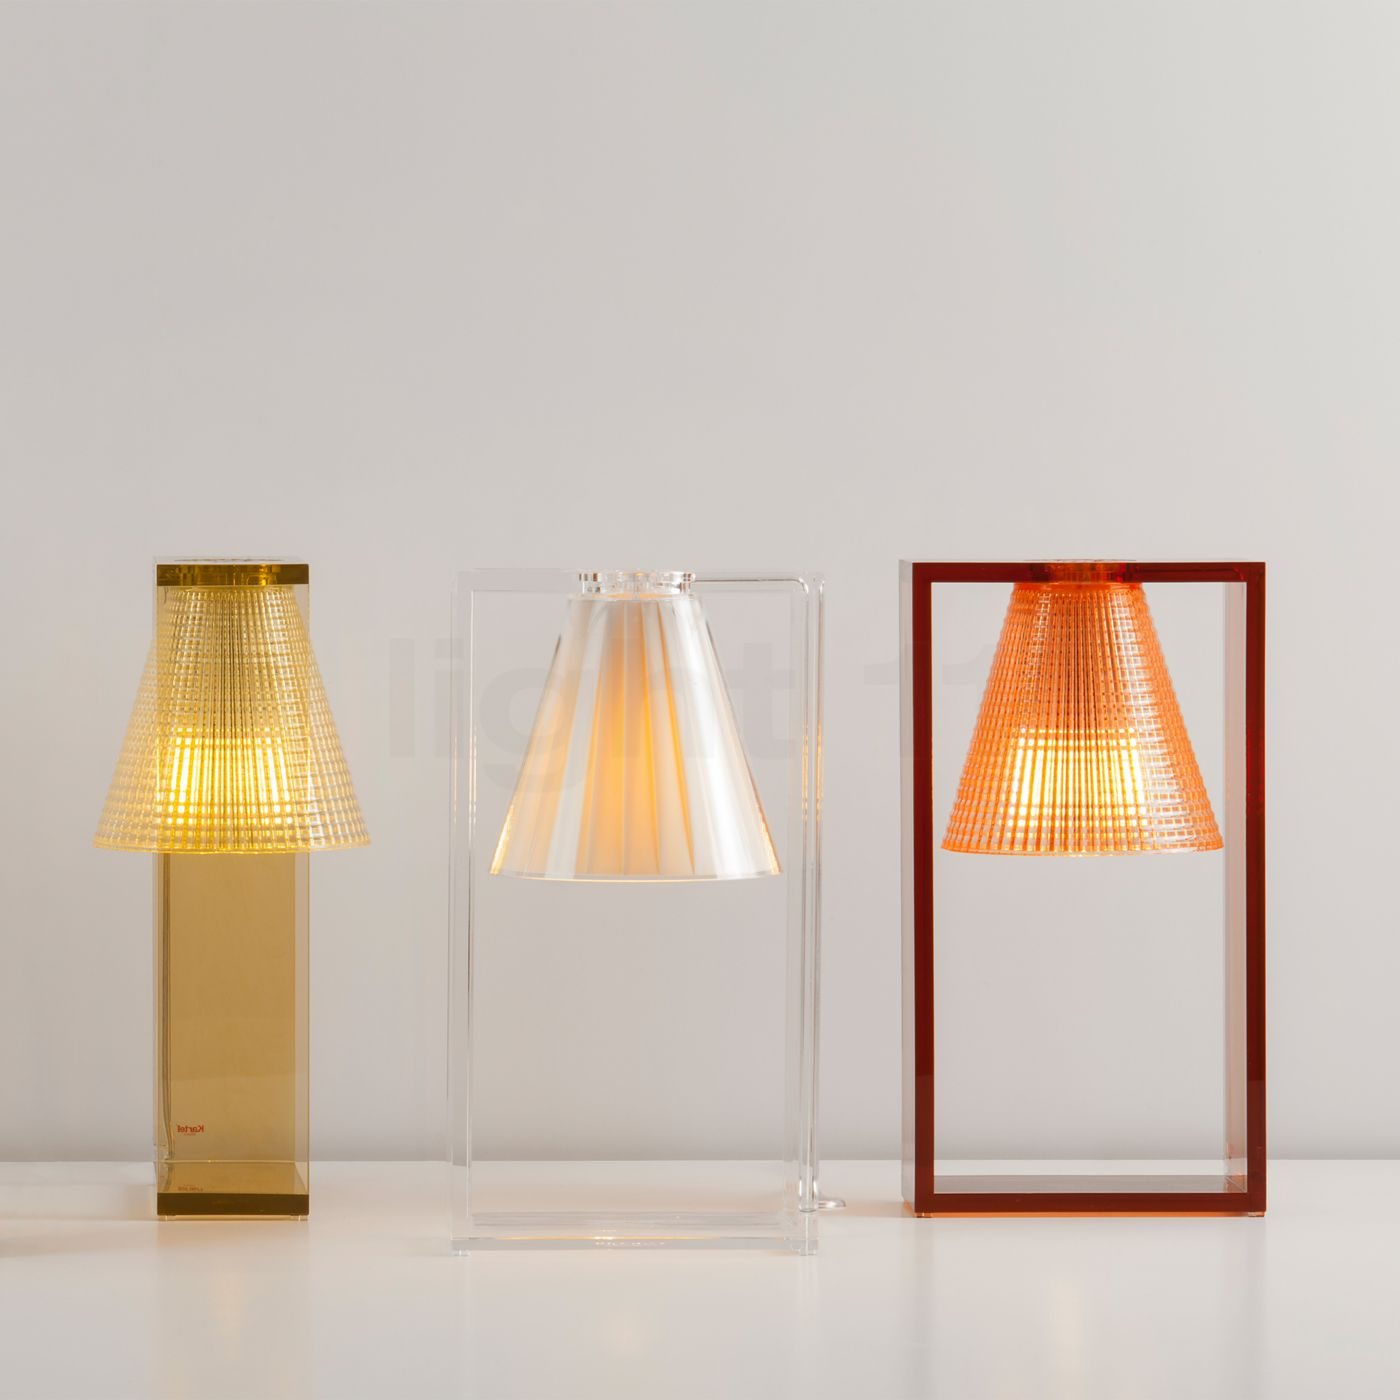 Compra Kartell Light-Air Lampada da tavolo su light11.it